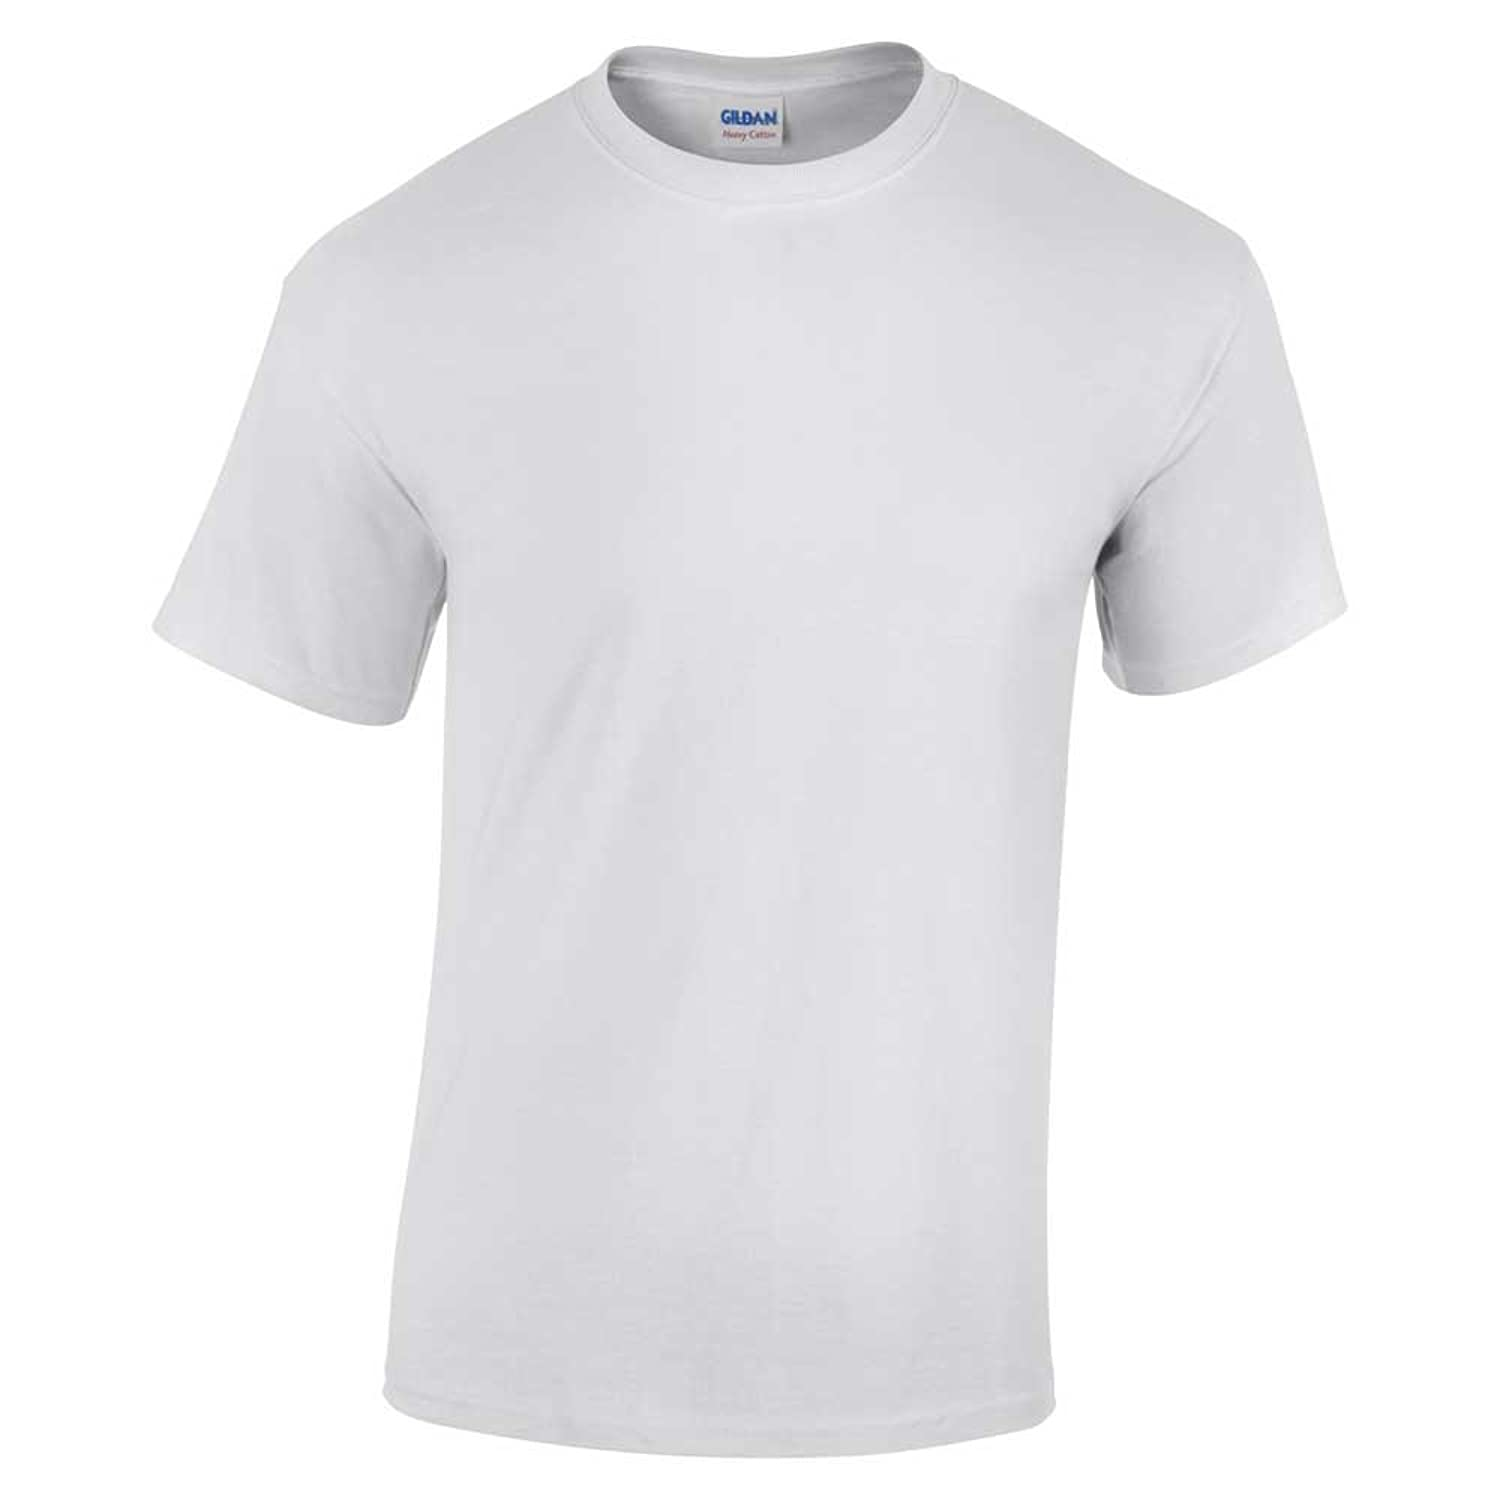 Thick cotton white shirt artee shirt for Where are gildan t shirts made